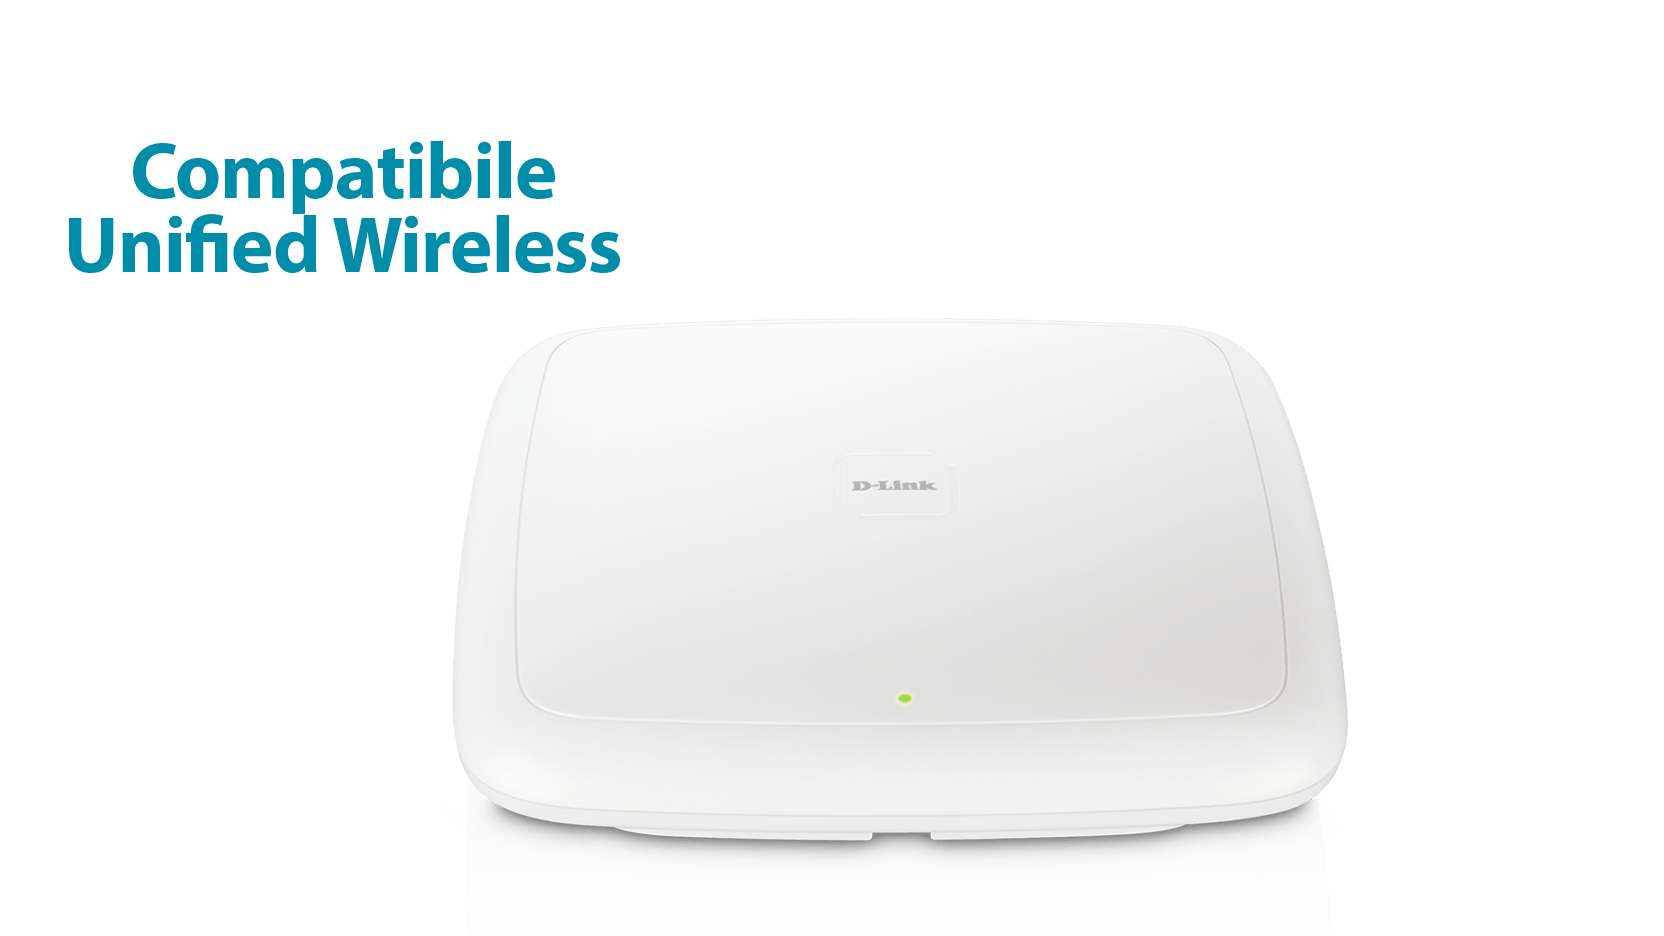 DWL 3600AP Compatibile Unified Wireless